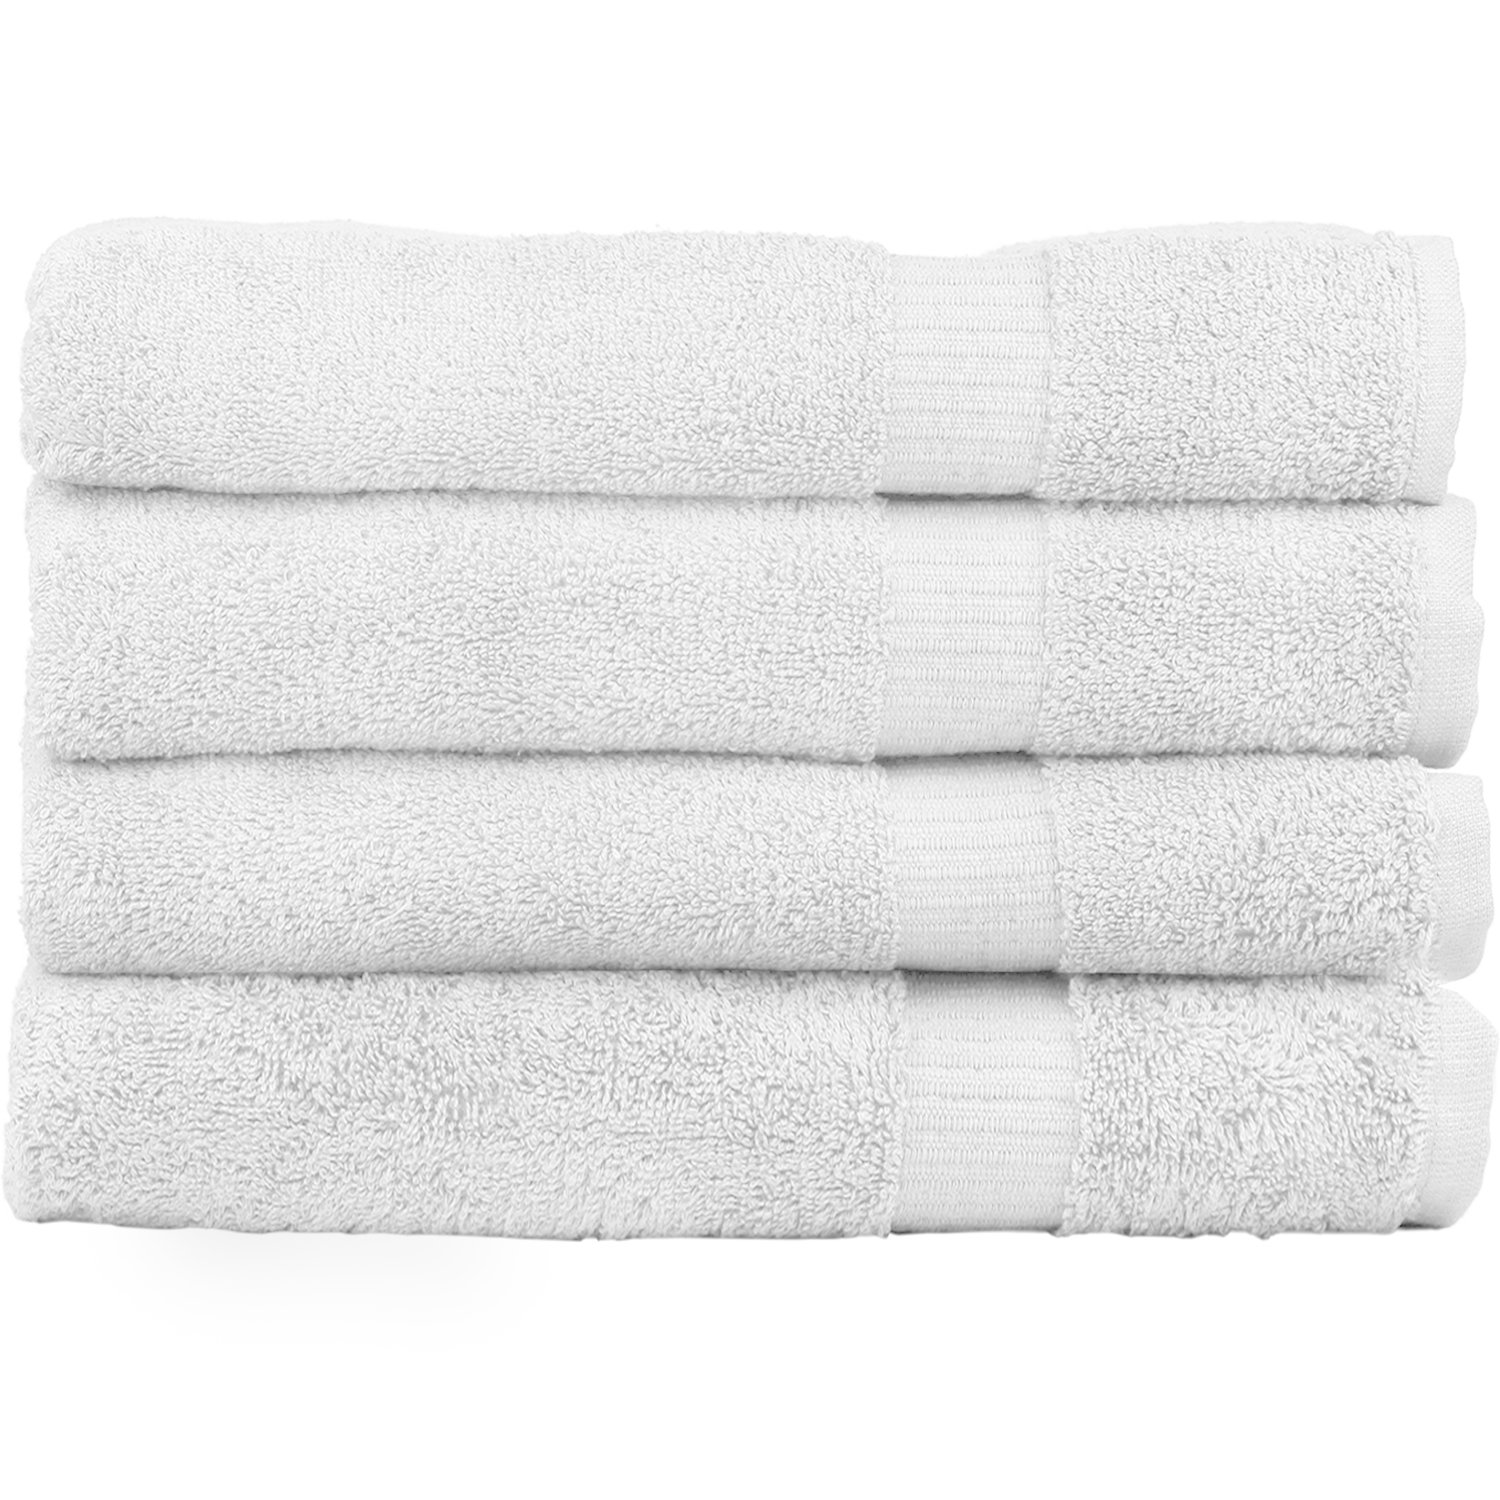 Zachary Collection Bath Towels [4 Pack] 100% Cotton, Elegant & Ultra Absorbent Set - White